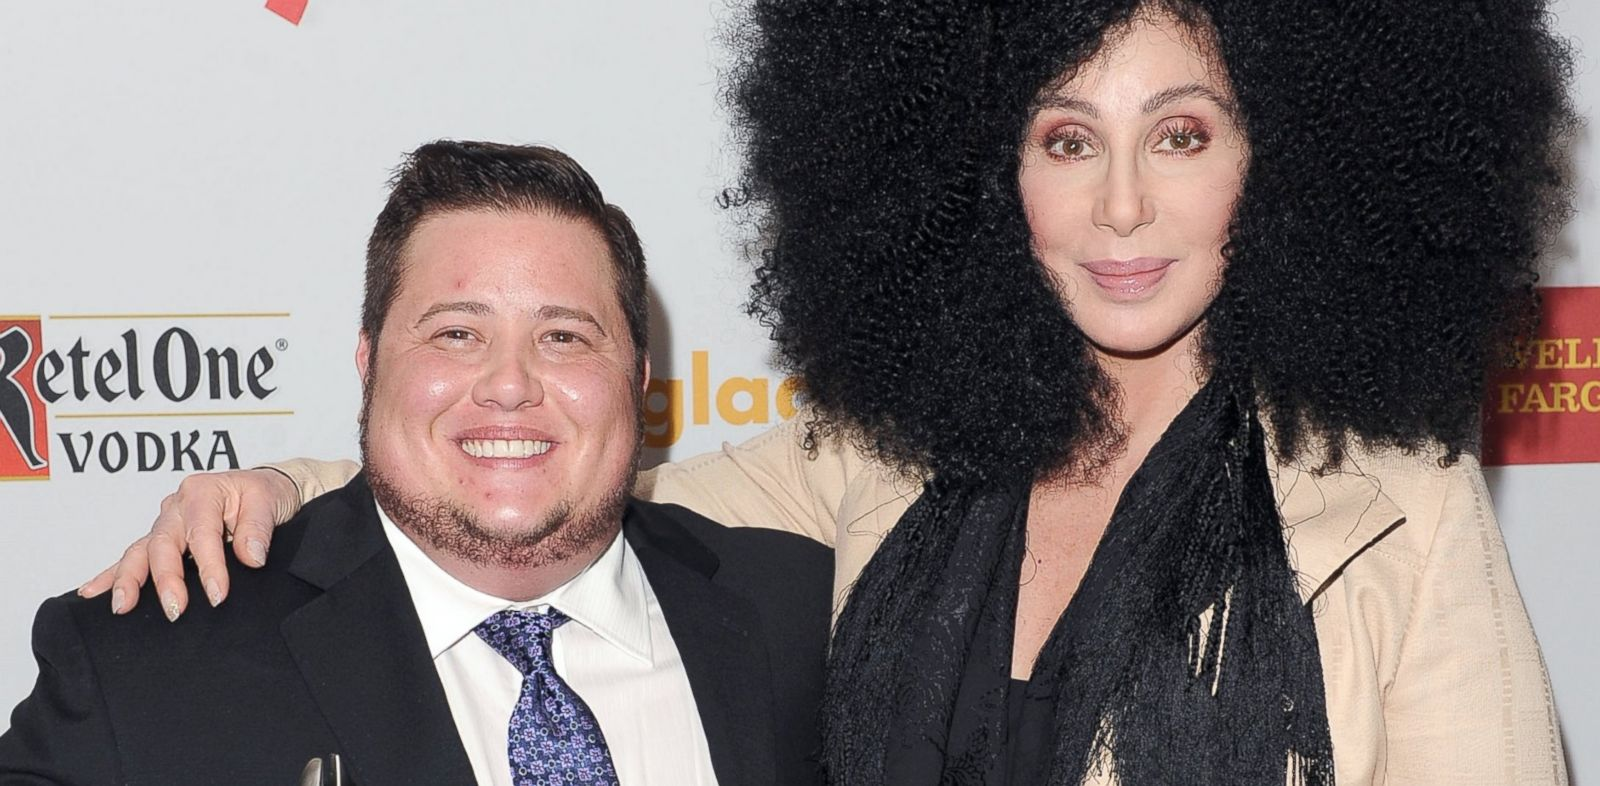 PHOTO: Chaz Bono and Cher at the GLAAD Media Awards in Los Angeles, Calif., April 21, 2012.